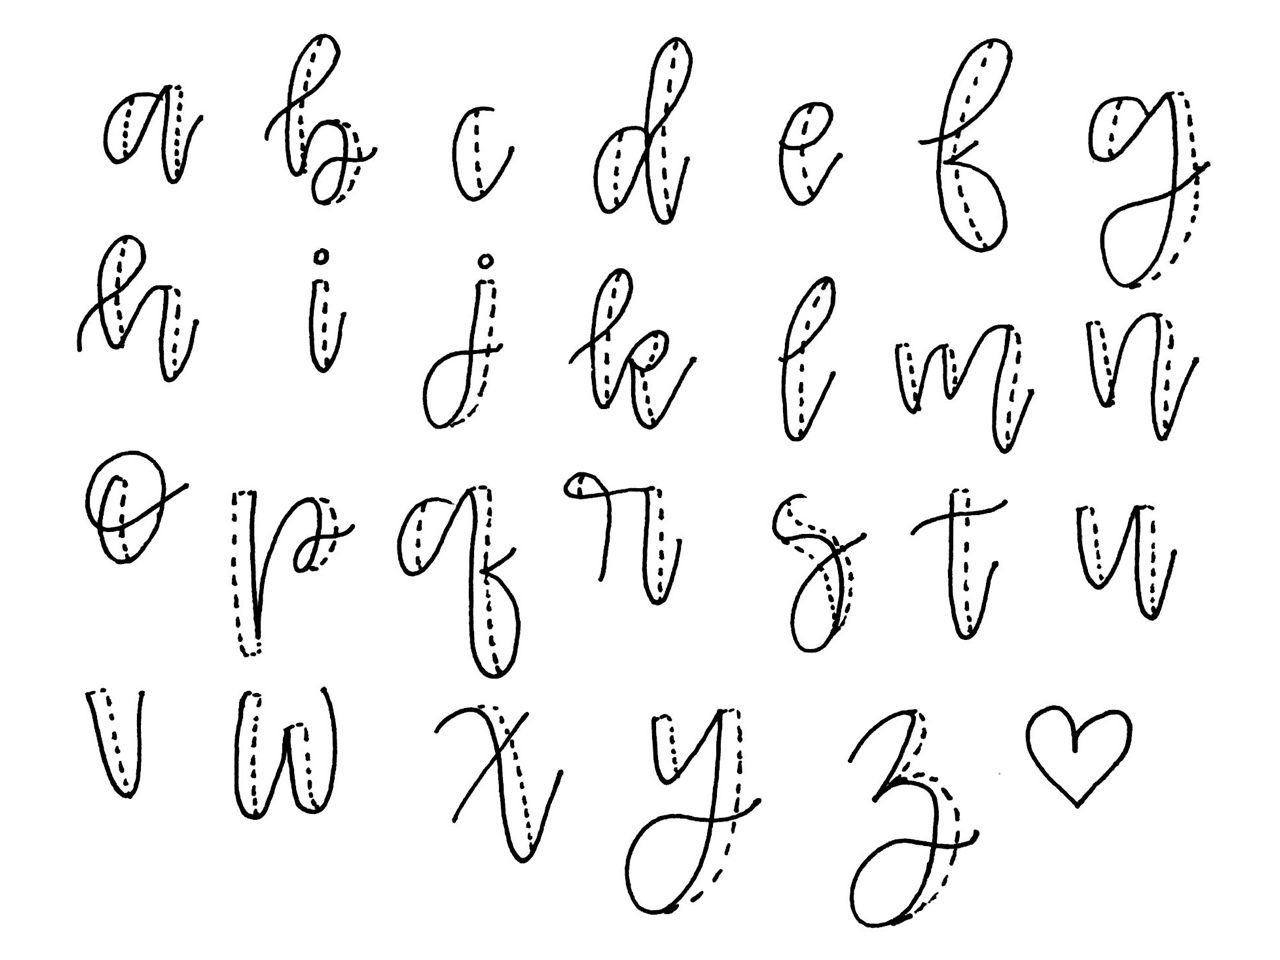 steps 1. exaggerated cursive 2. thicken the downstrokes 3